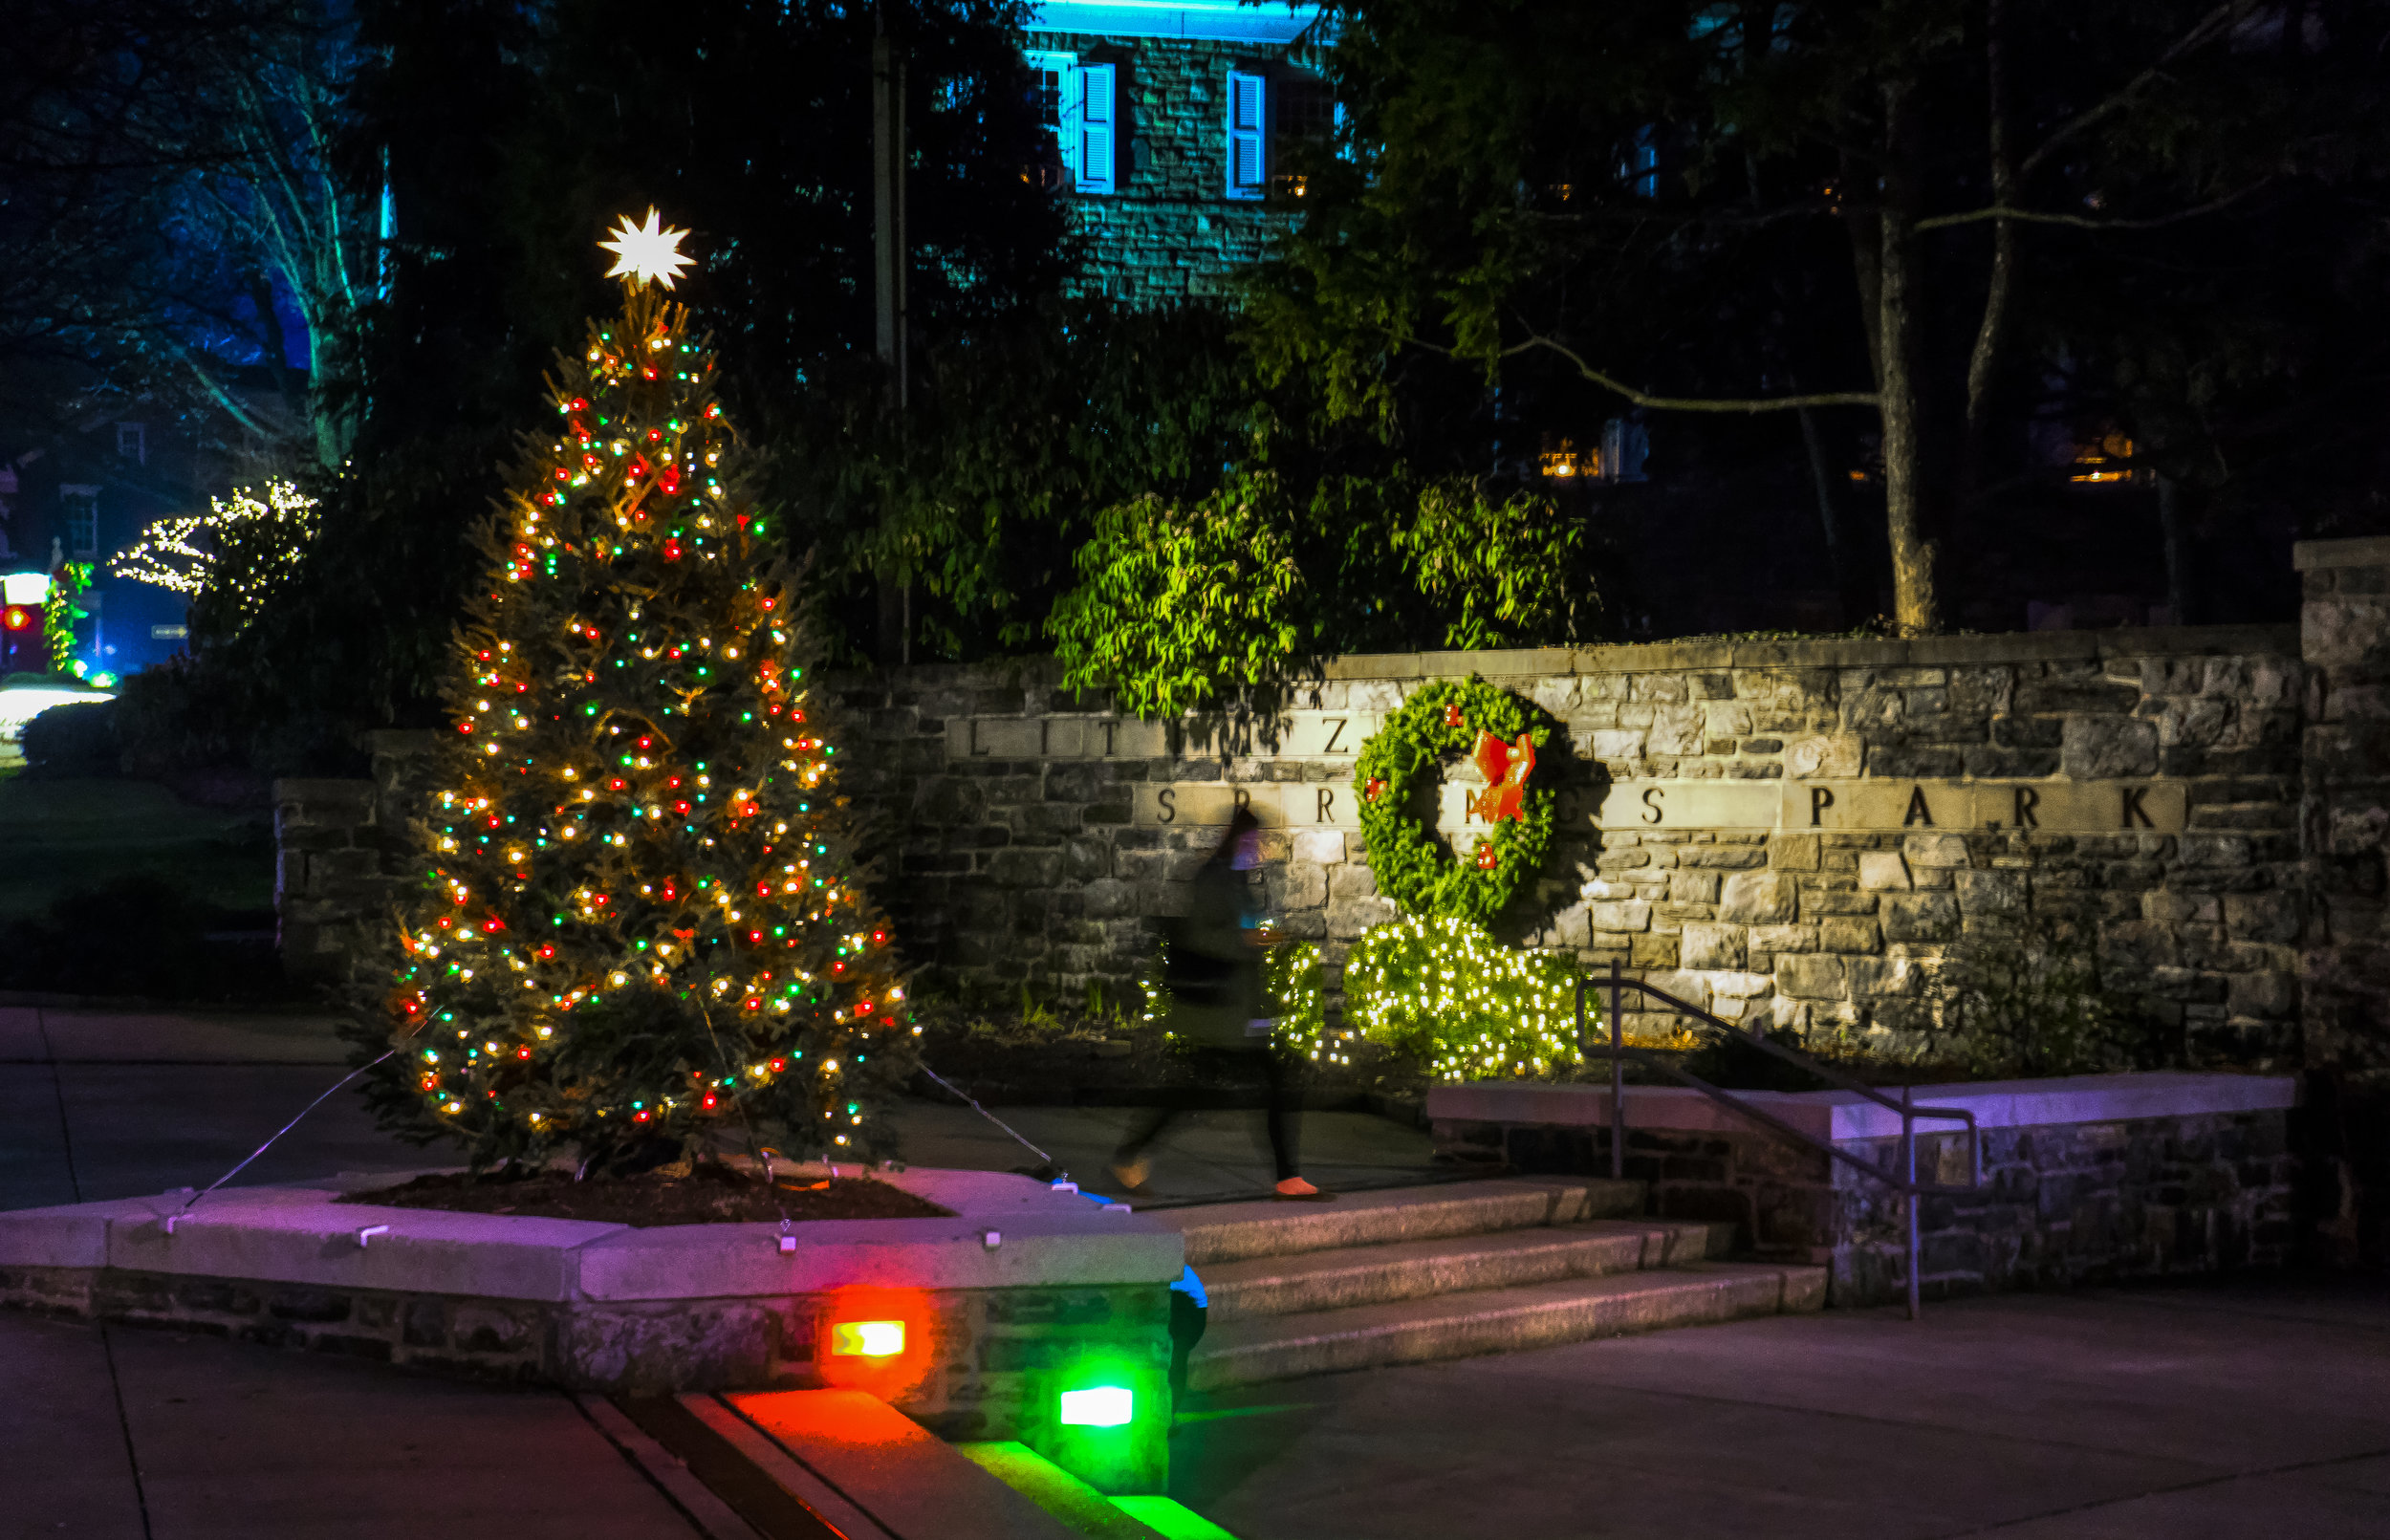 Lititz Springs Park beautifully decorated for Christmas.